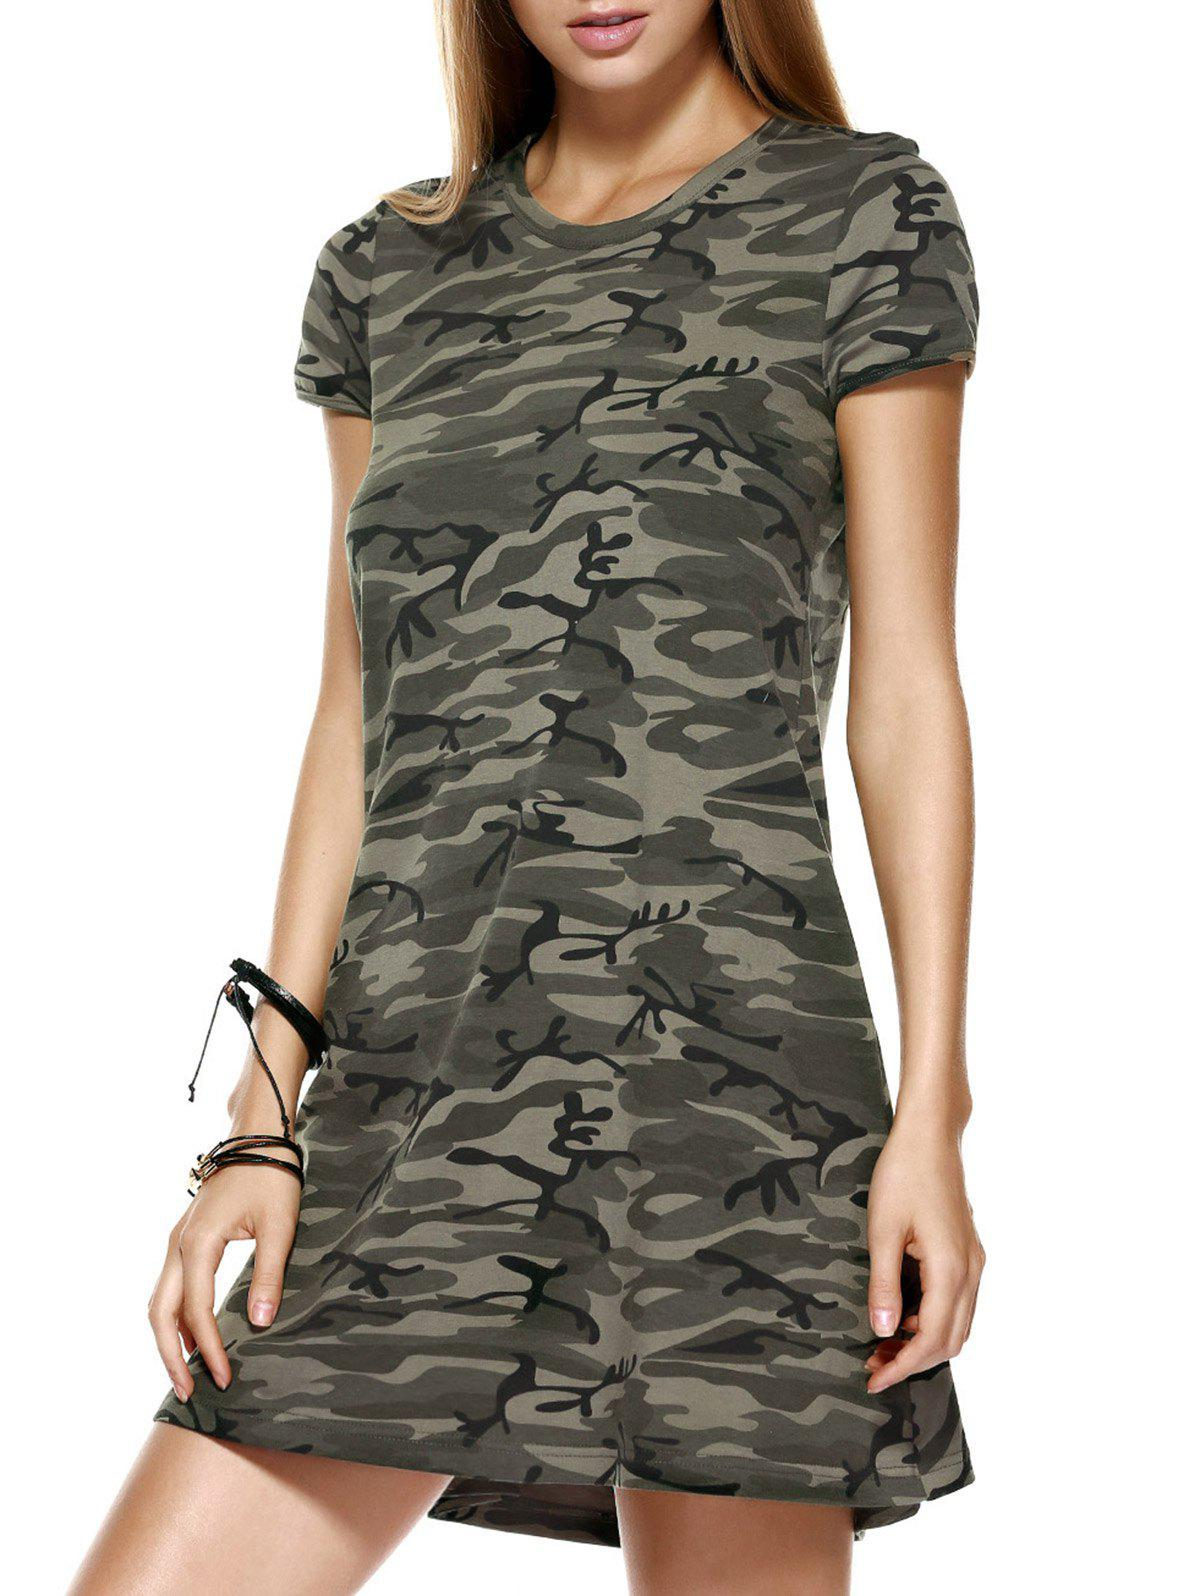 Fashionable Round Collar Camo Printing Short Sleeves Dress For Women - COLORMIX XL